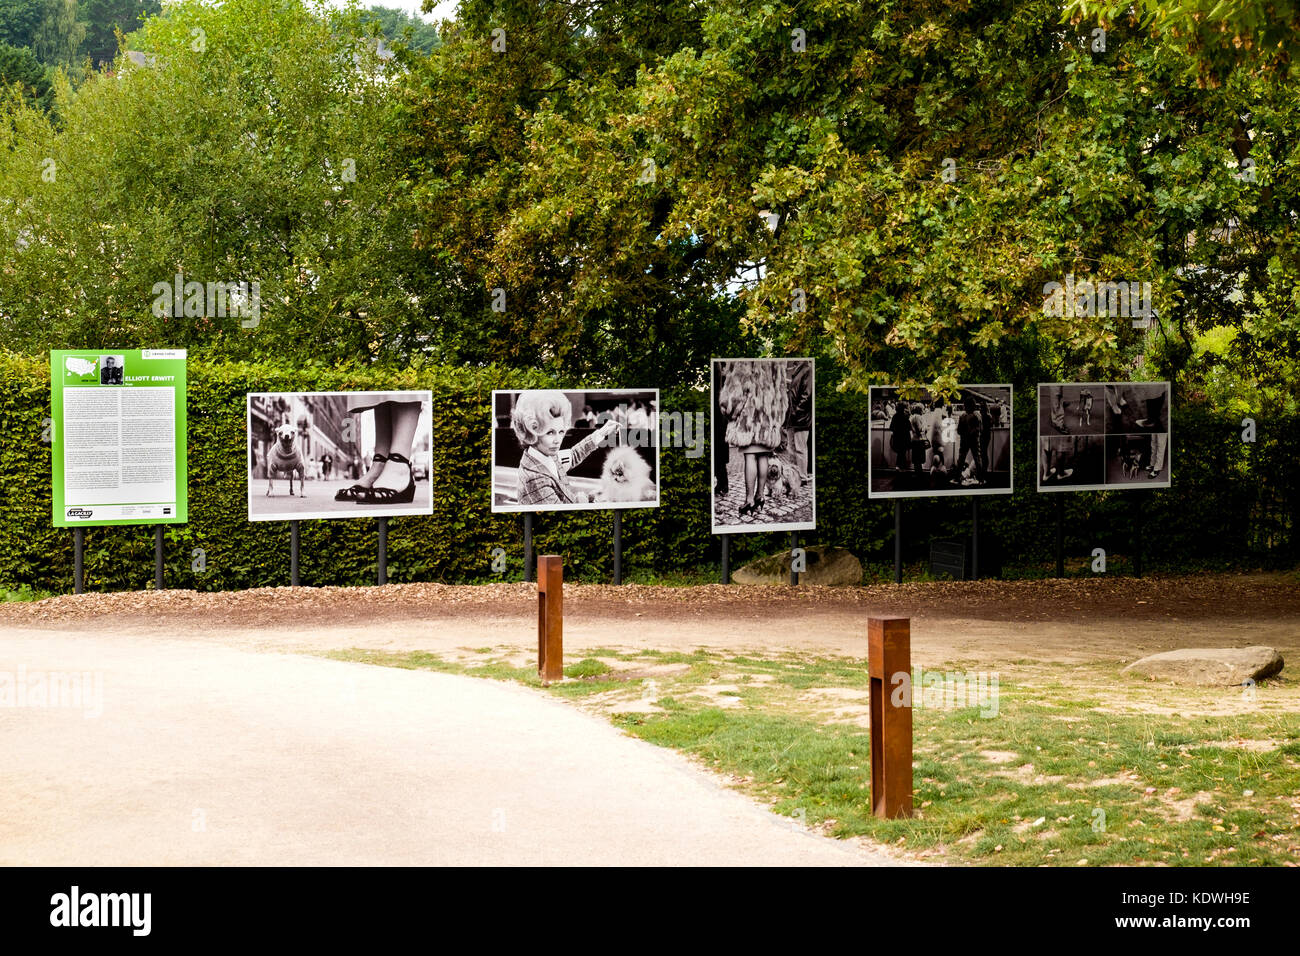 The photographs of Elliott Erwin on display at the outdoor exhibition in La Gacilly, Morbihan, Brittany, France. - Stock Image